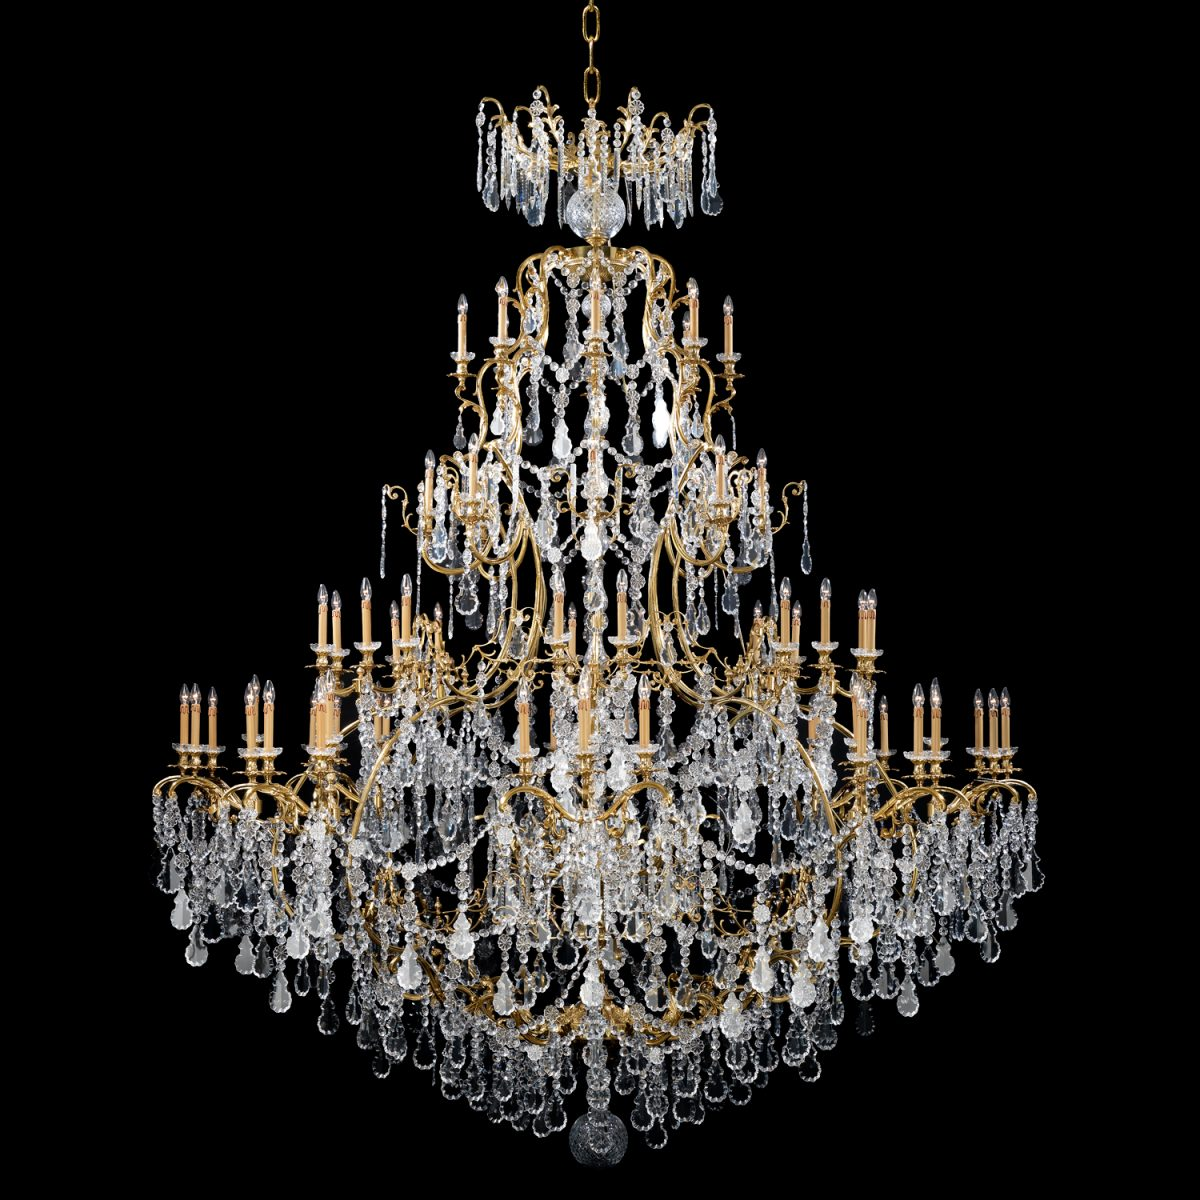 Handcrafted Lighting Designs by Badari badari Handcrafted Lighting Designs by Badari isaloni 2019 Mesmerizing Handcrafted Lighting Designs by Badari Heritage Chandelier 2016